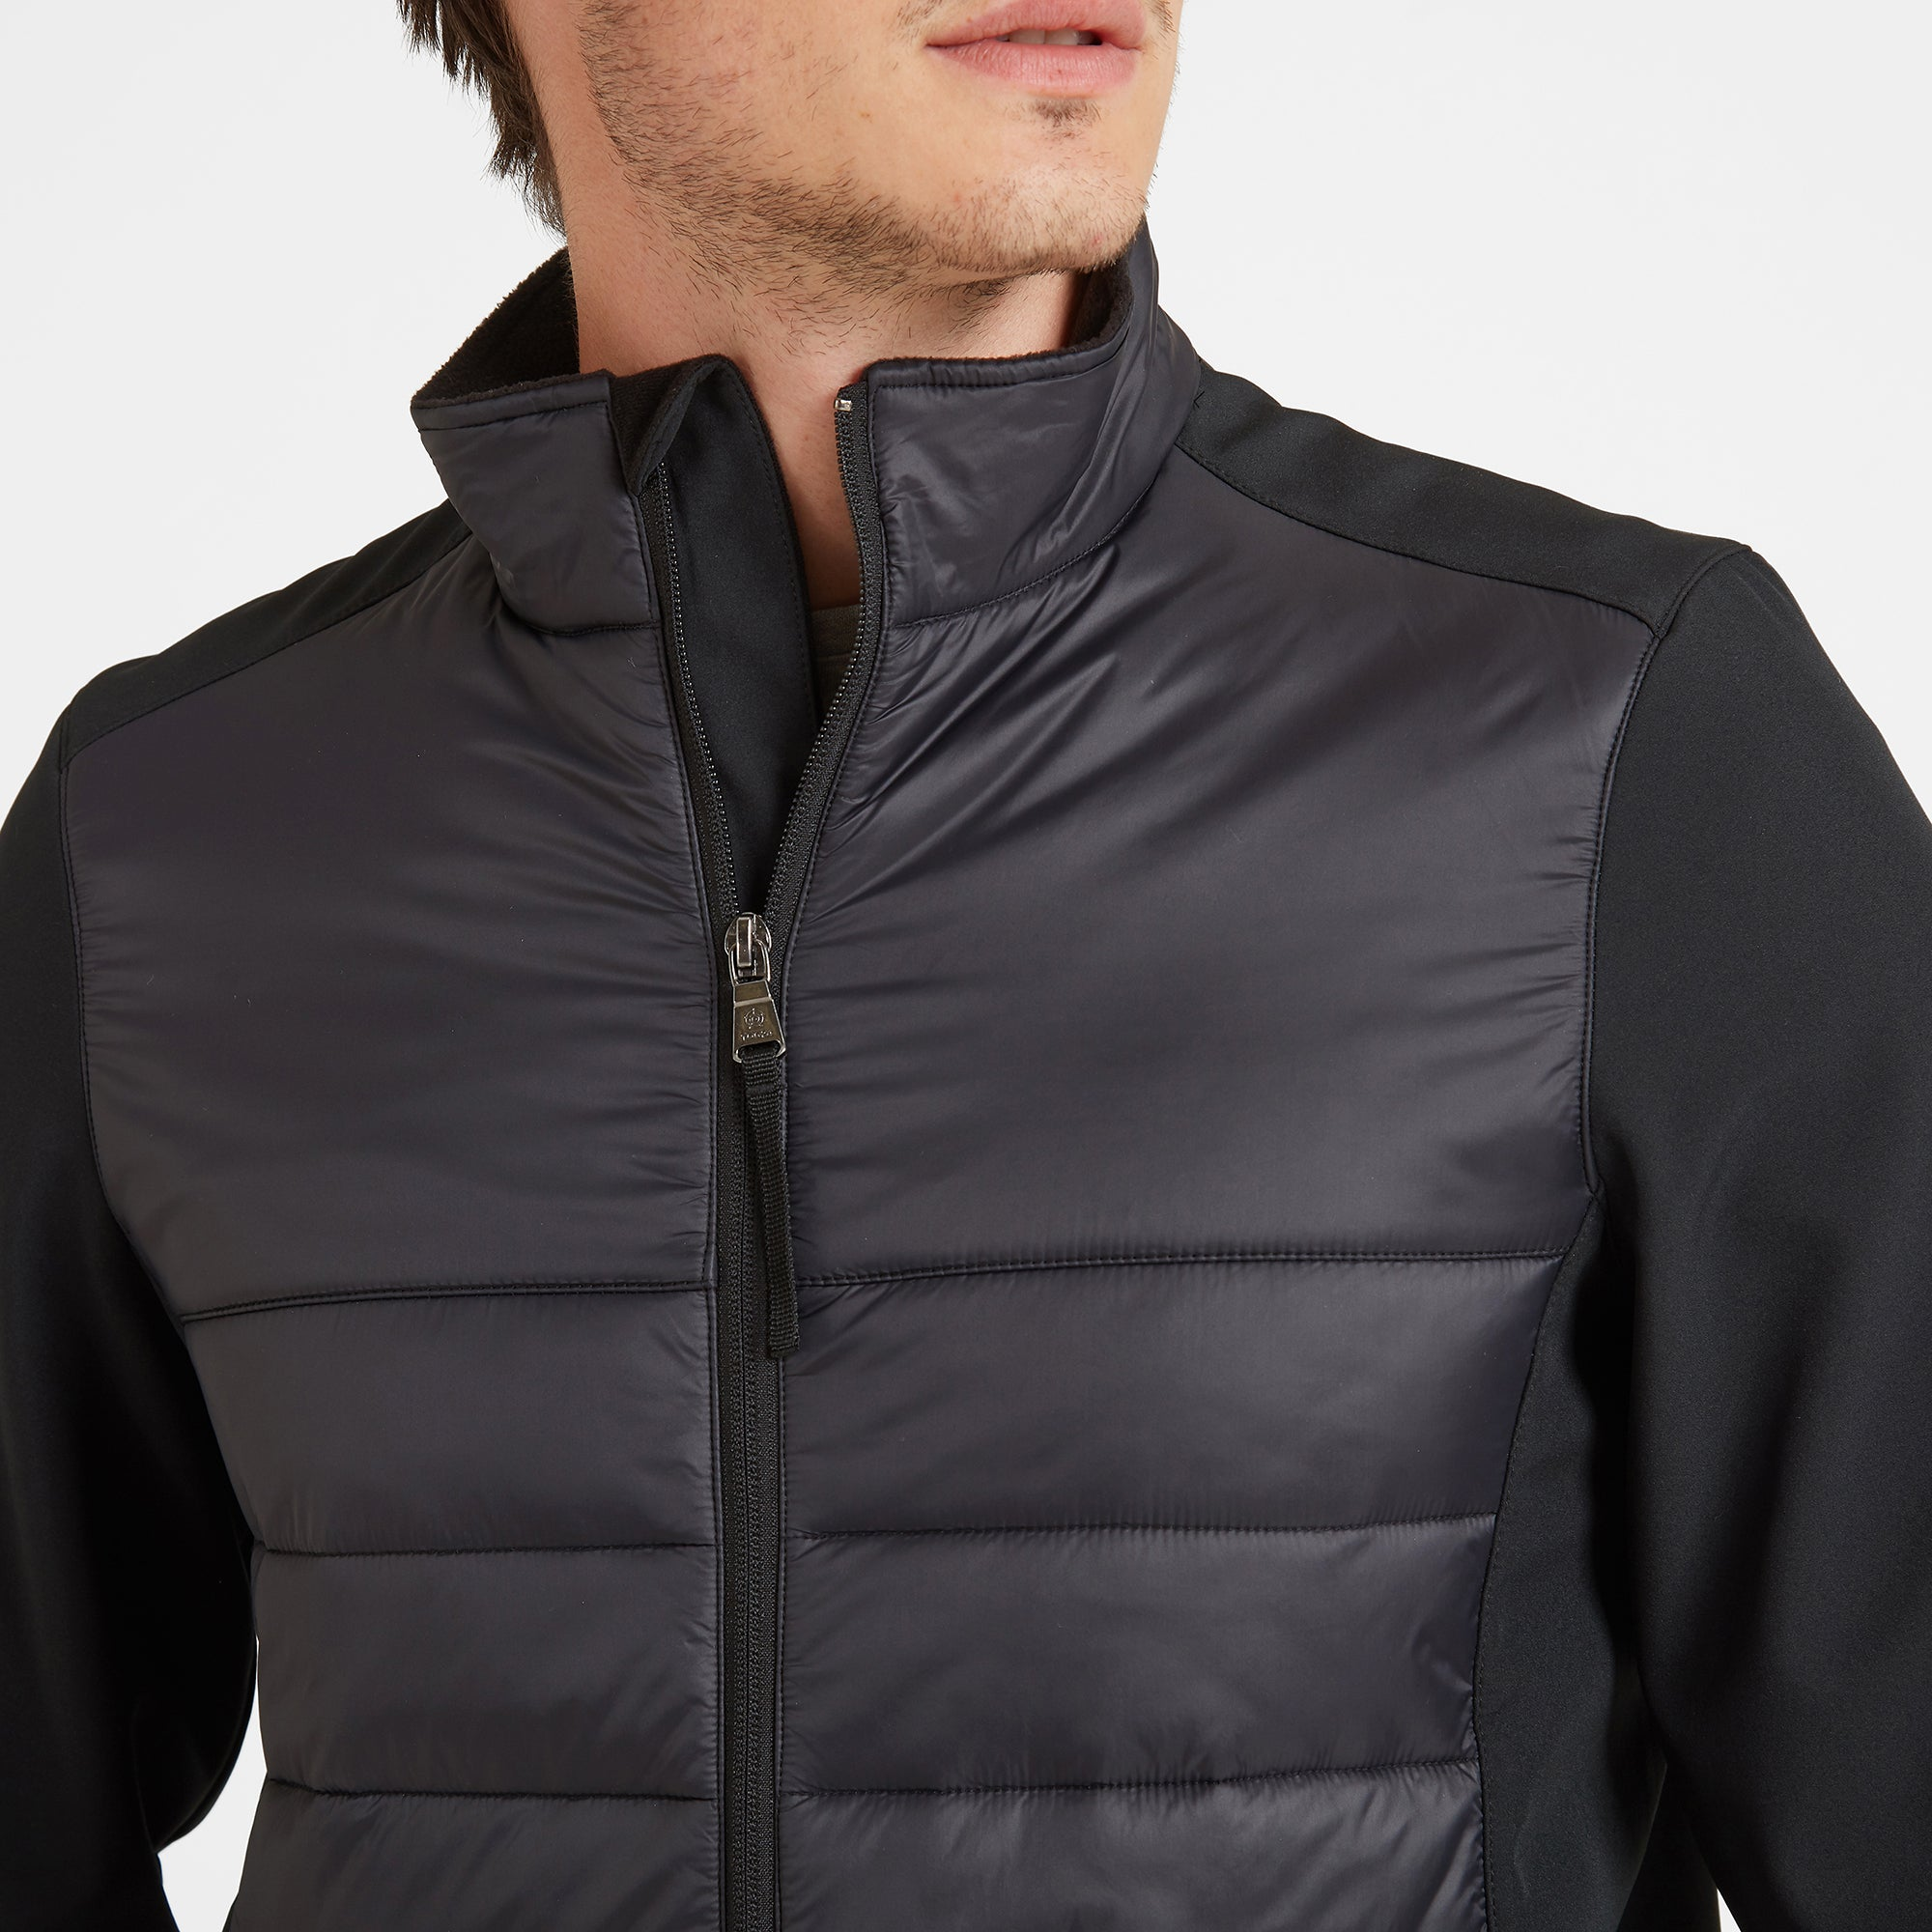 Stamford Mens Insulated Jacket - Black